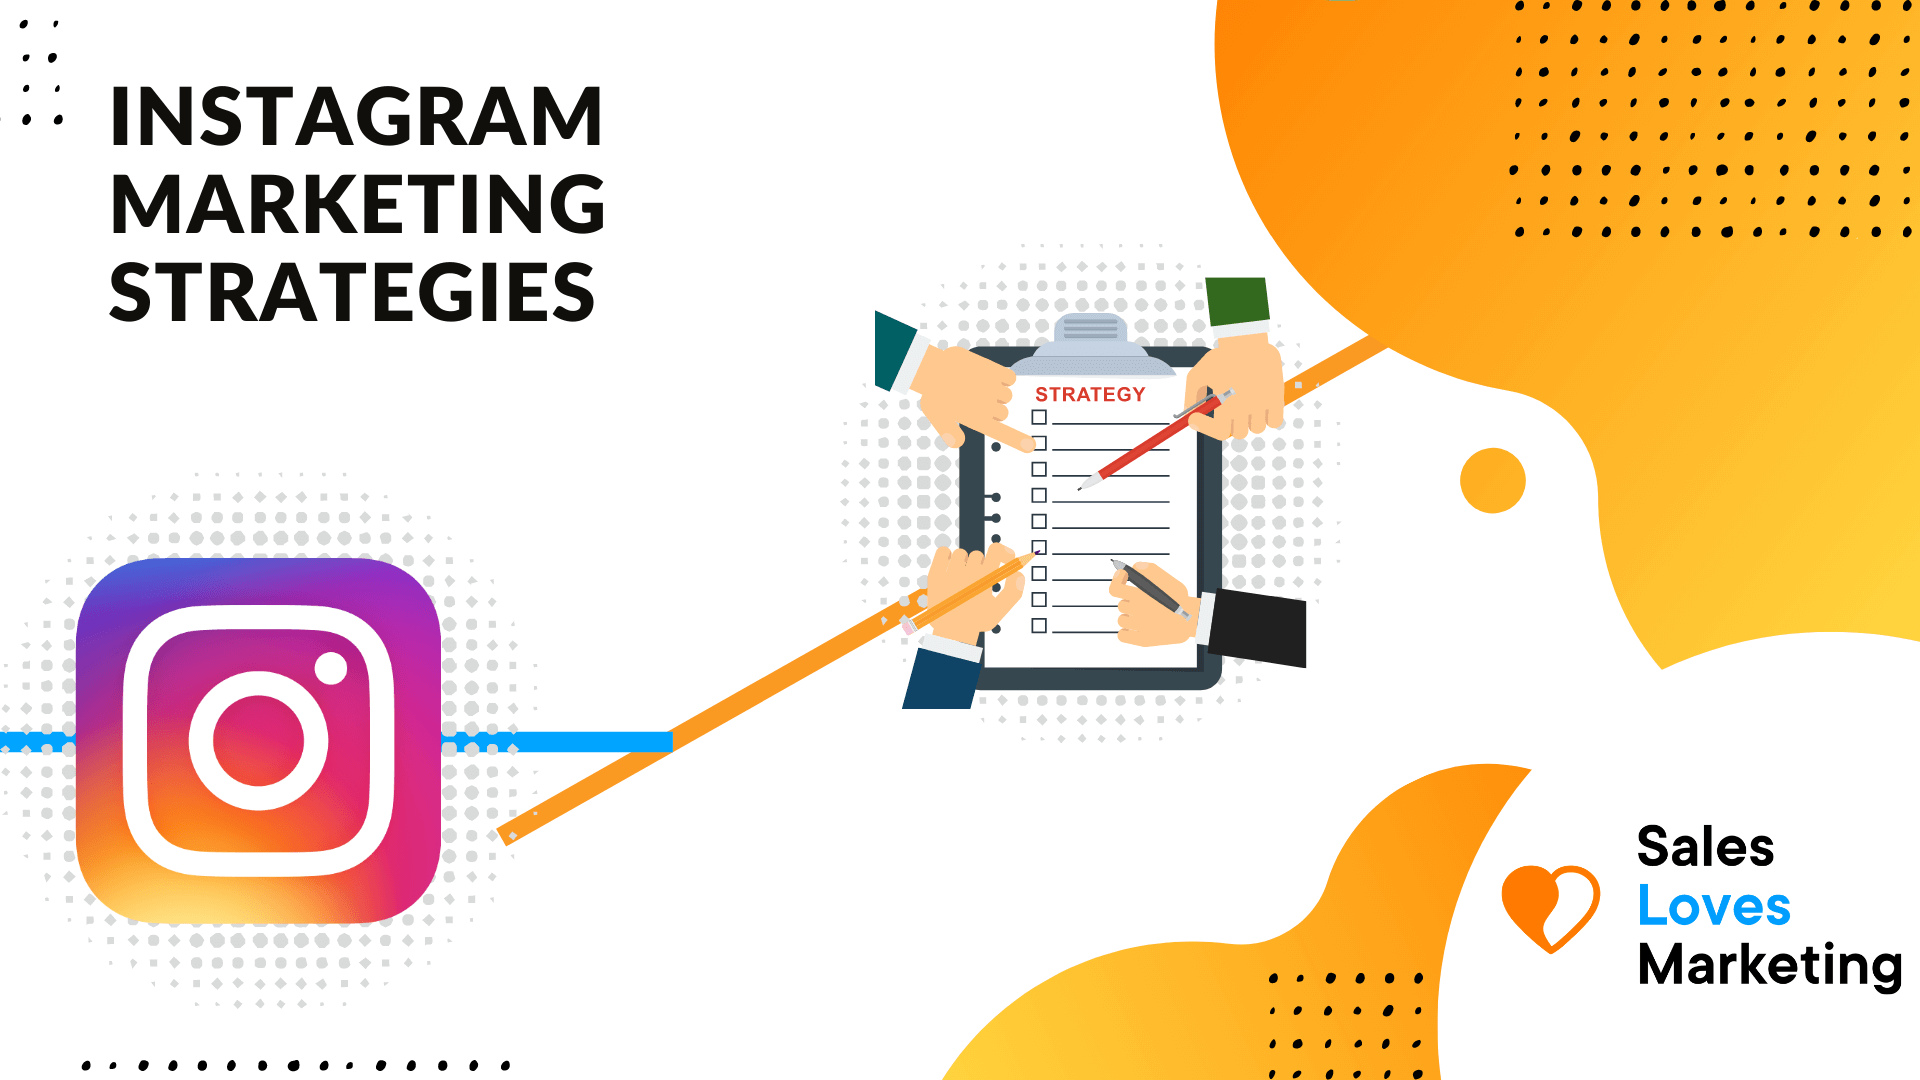 How to drive traffic to your website via Instagram, learn more about instagram marketing strategies